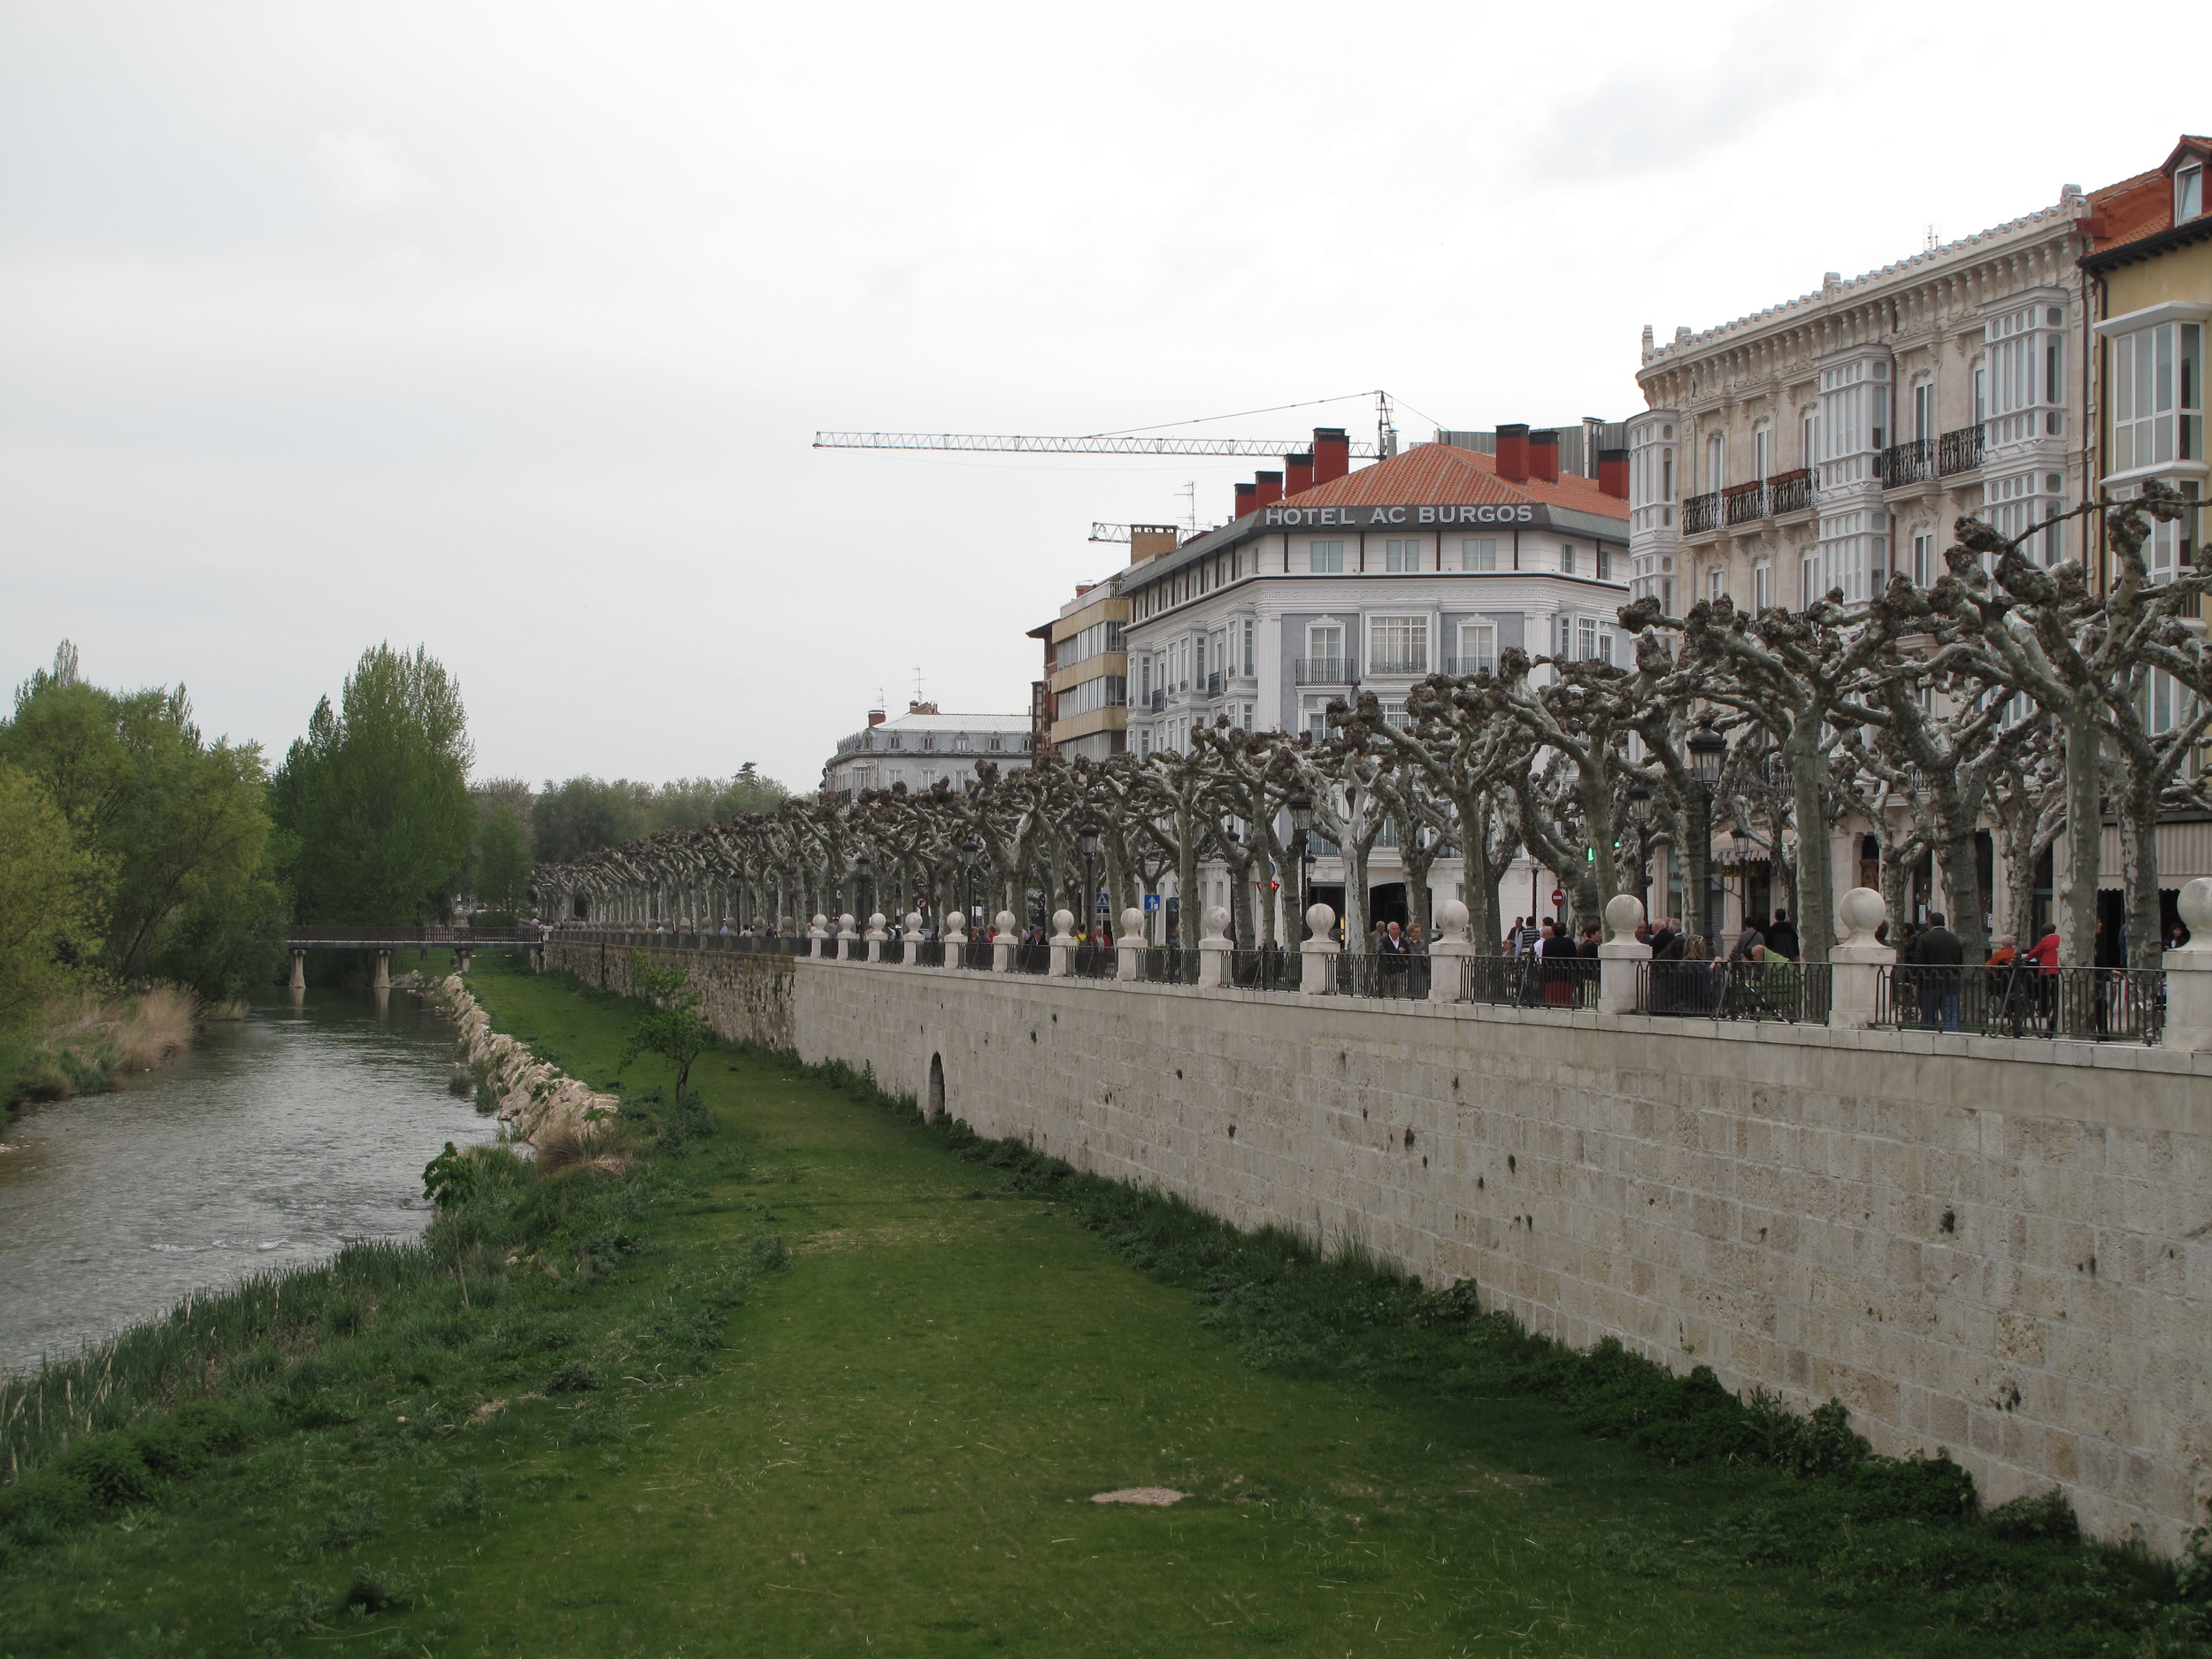 The view in Burgos down by the river is breathtaking.